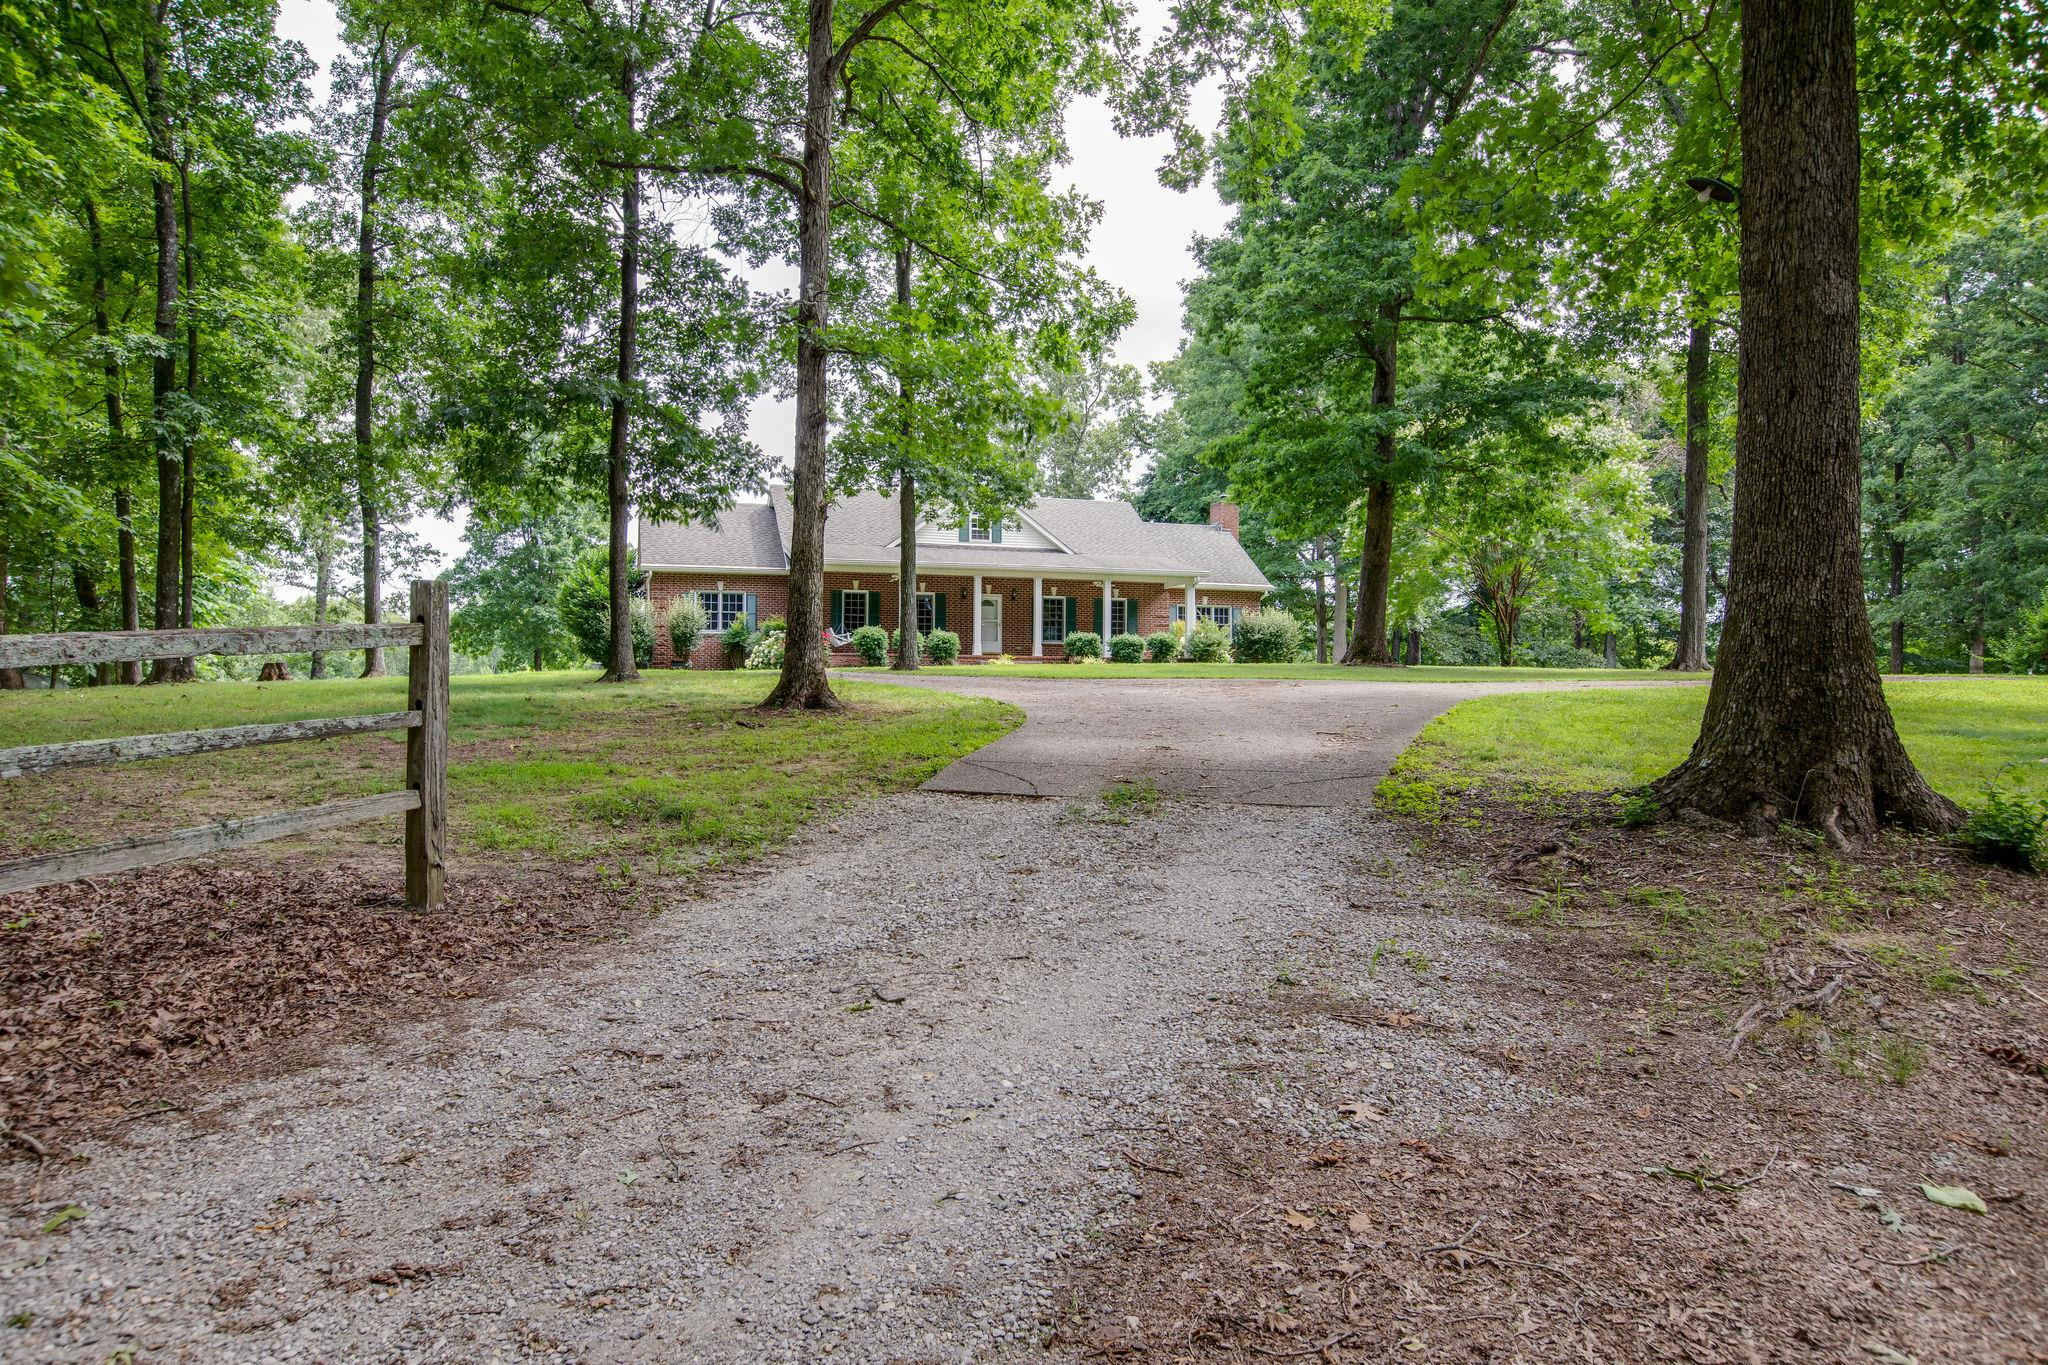 7760 Smith Rd, Primm Springs, TN 38476 - Primm Springs, TN real estate listing